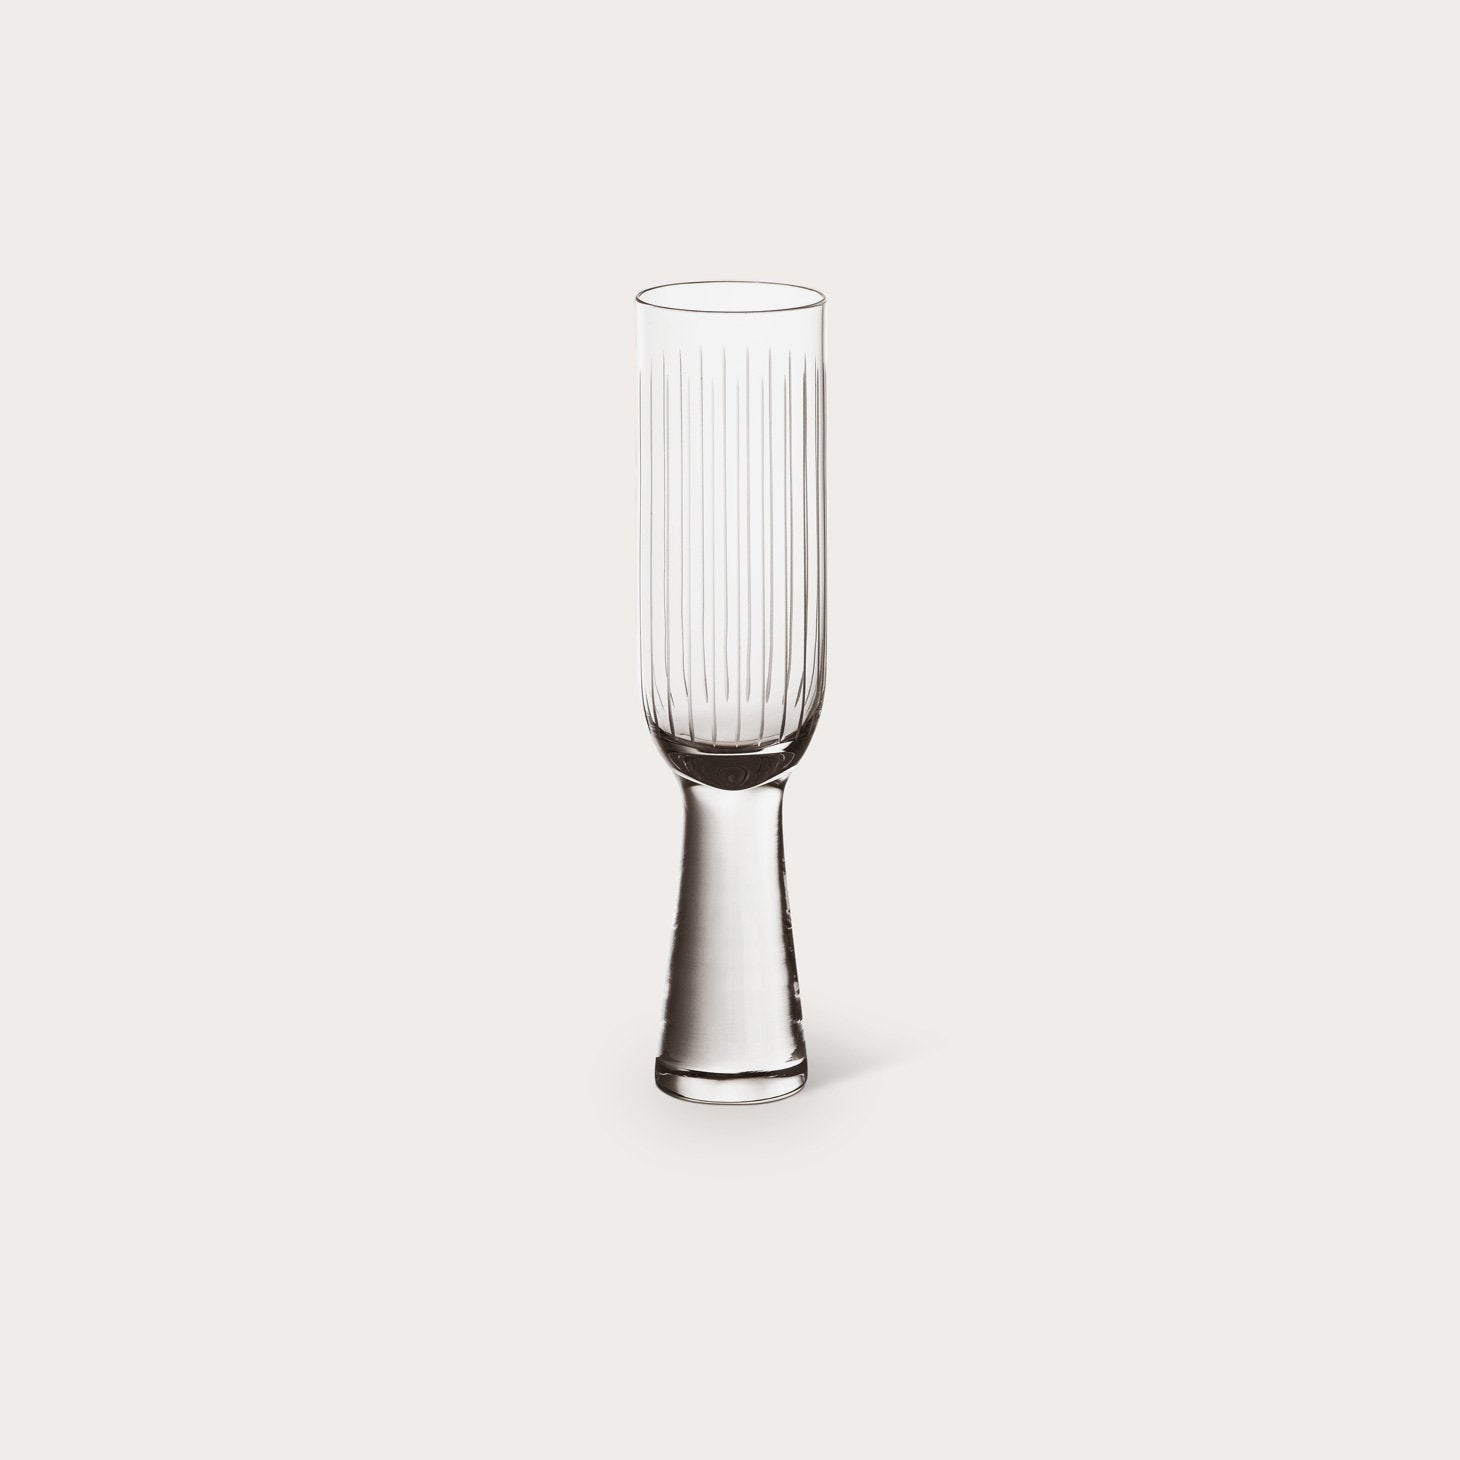 Otto Champagne Flute Set of 2 Accessories Yabu Pushelberg Designer Furniture Sku: 110-100-10007